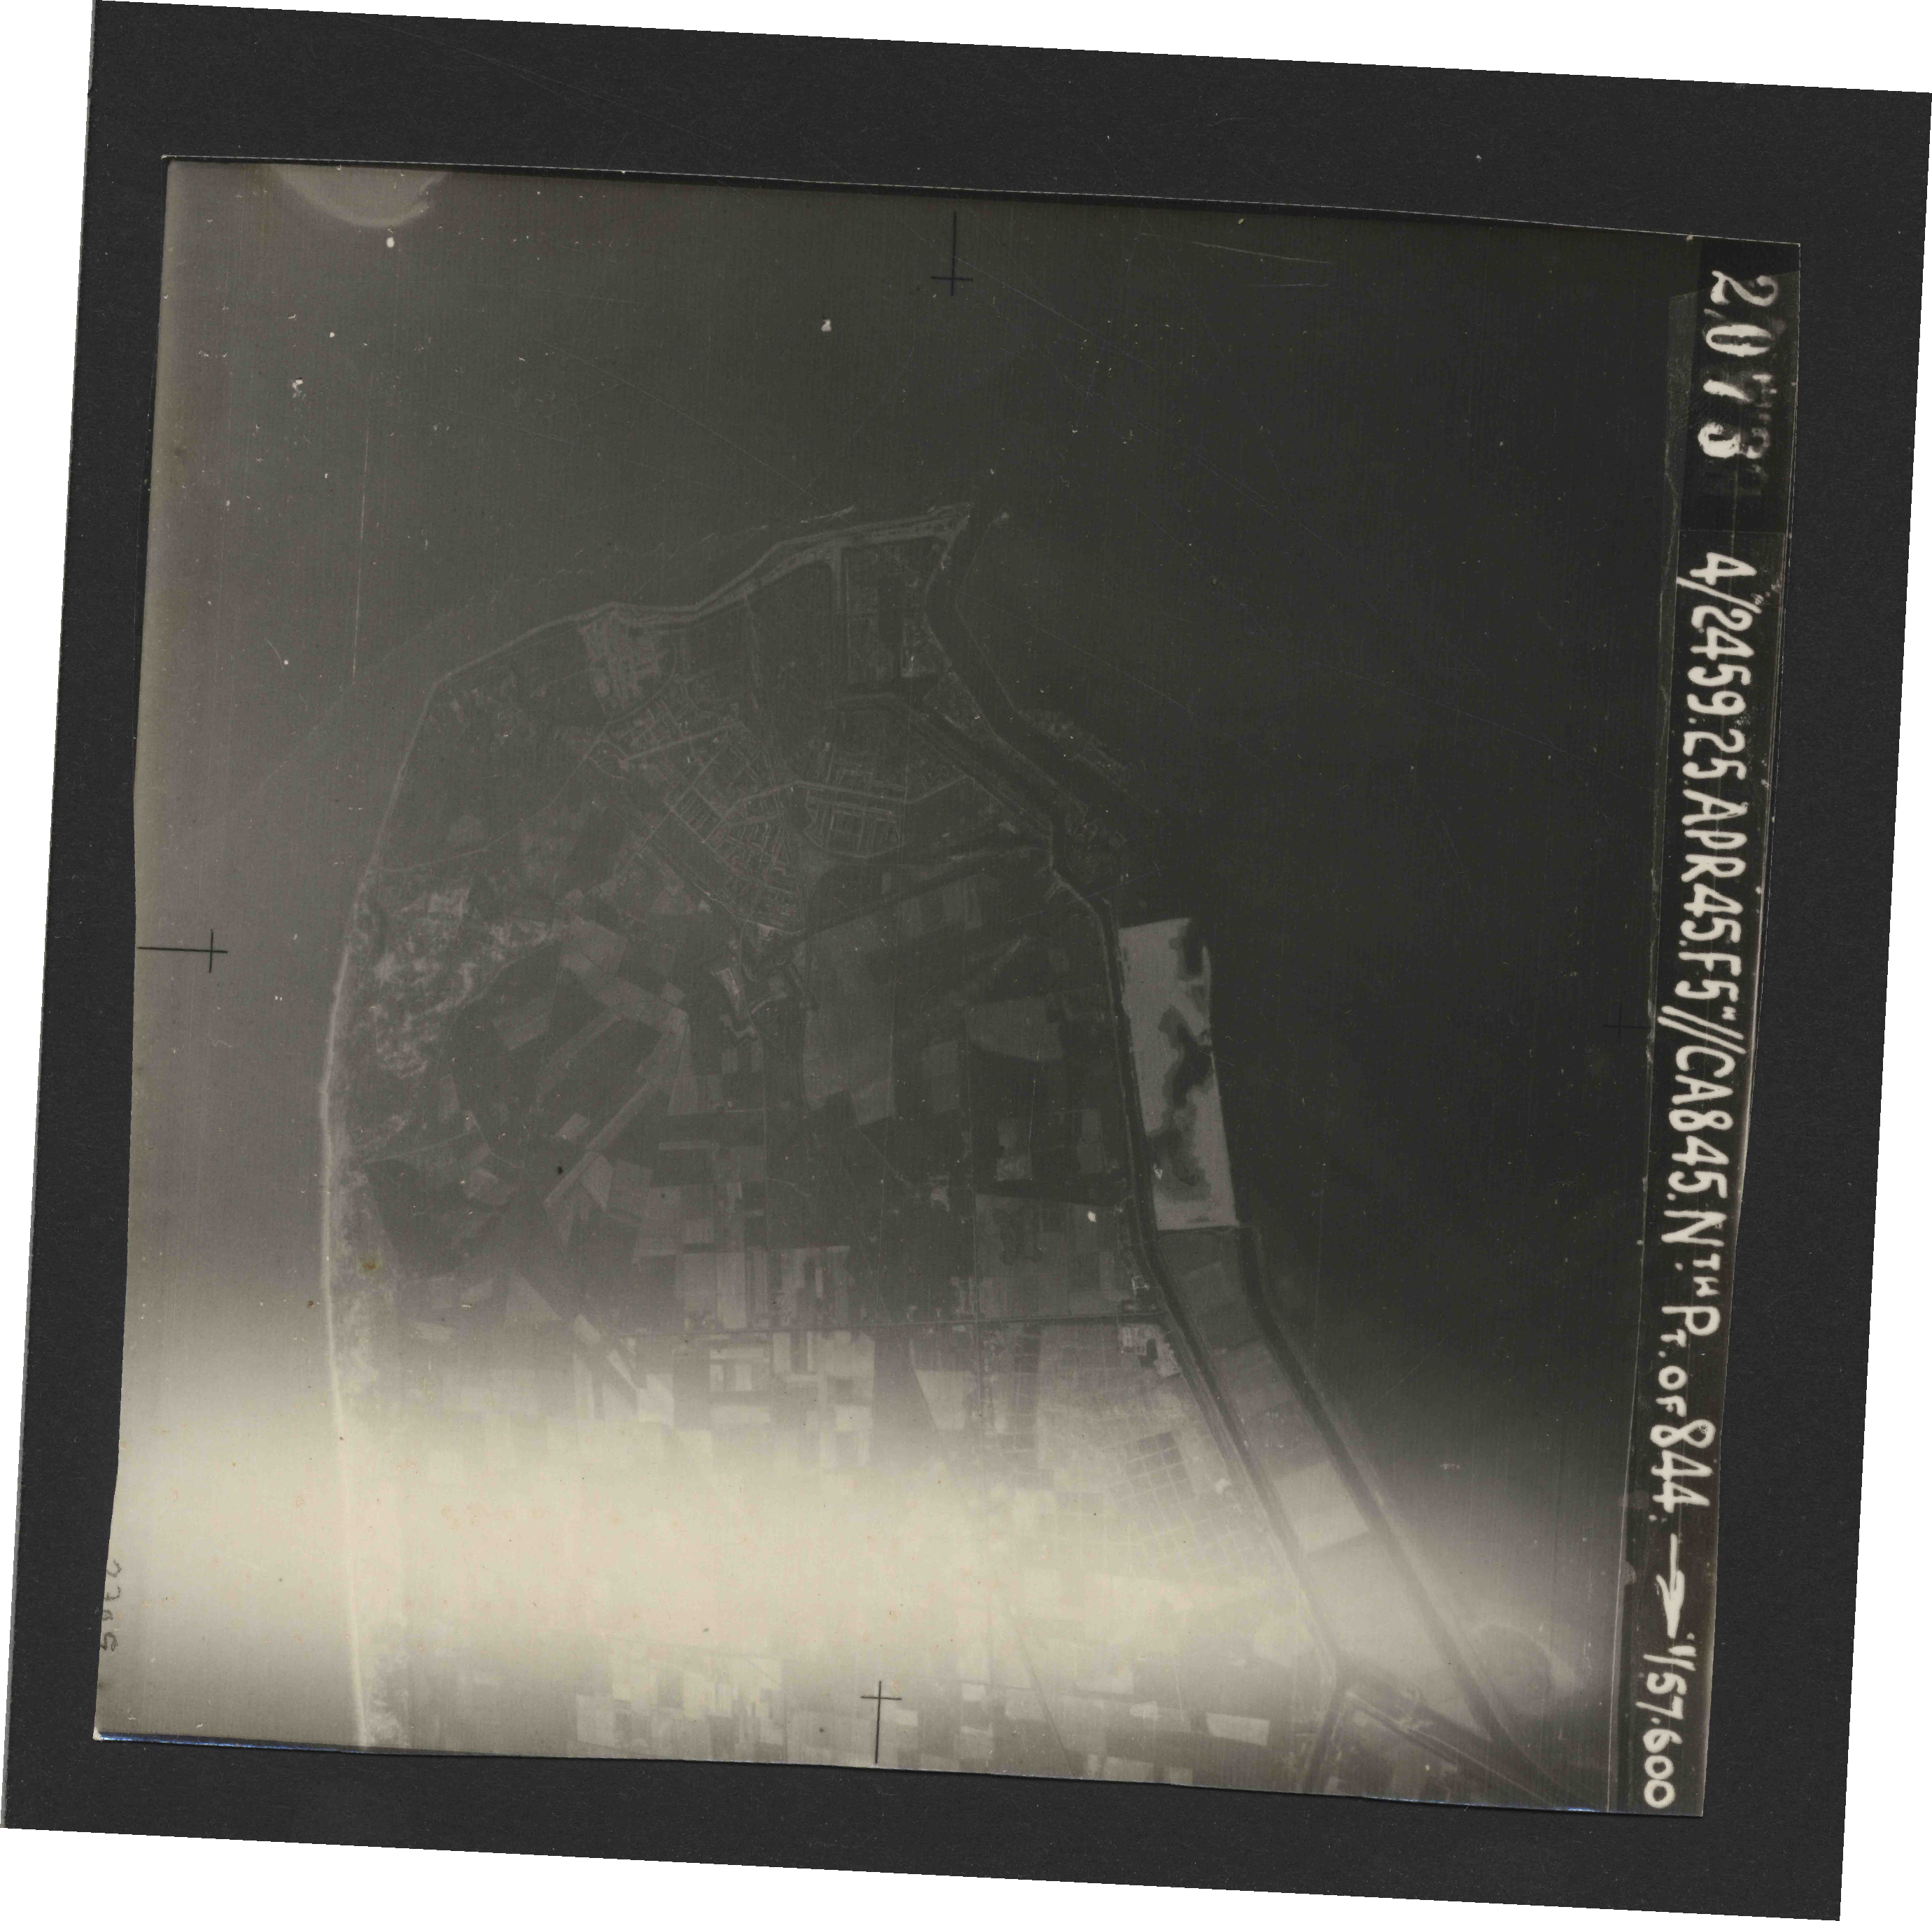 Collection RAF aerial photos 1940-1945 - flight 500, run 02, photo 2073